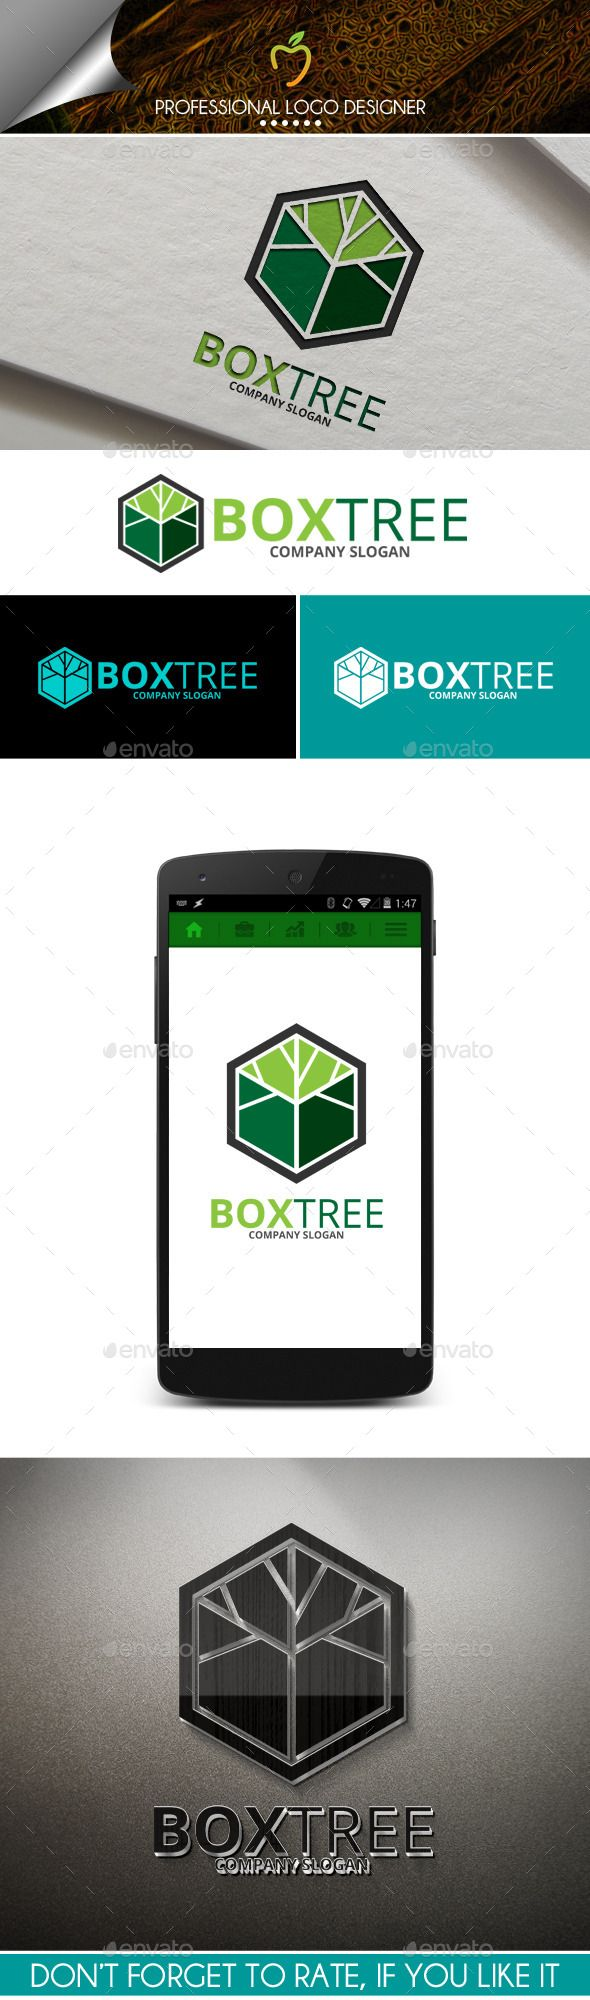 Box Tree Logo — Vector EPS #box #green • Available here → https://graphicriver.net/item/box-tree-logo/10012316?ref=pxcr